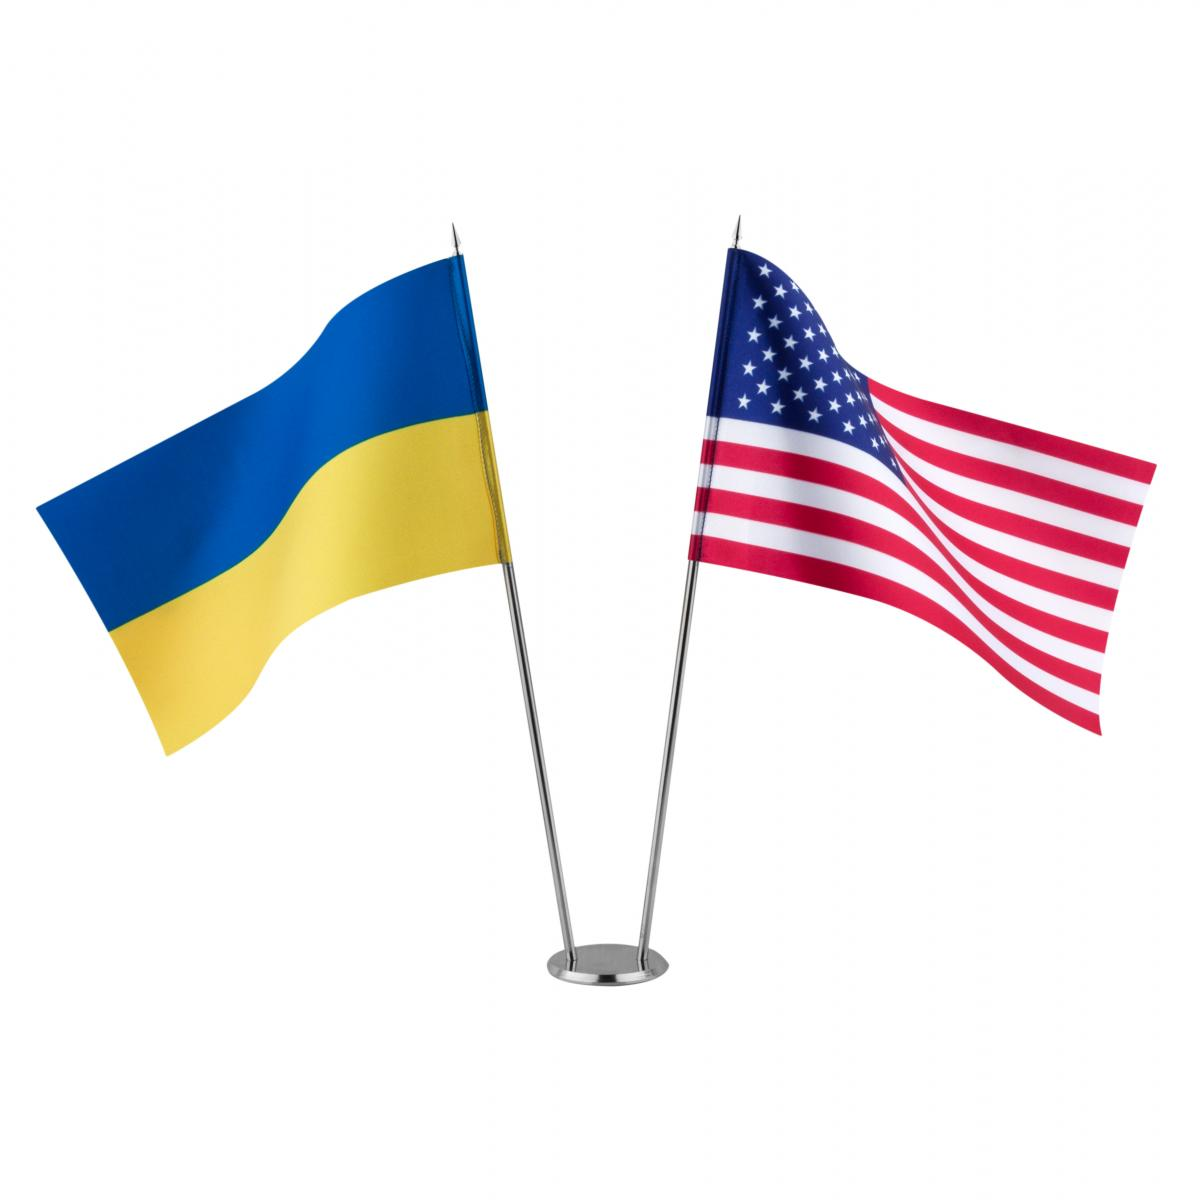 Flags of Ukraine and the United States on the stand